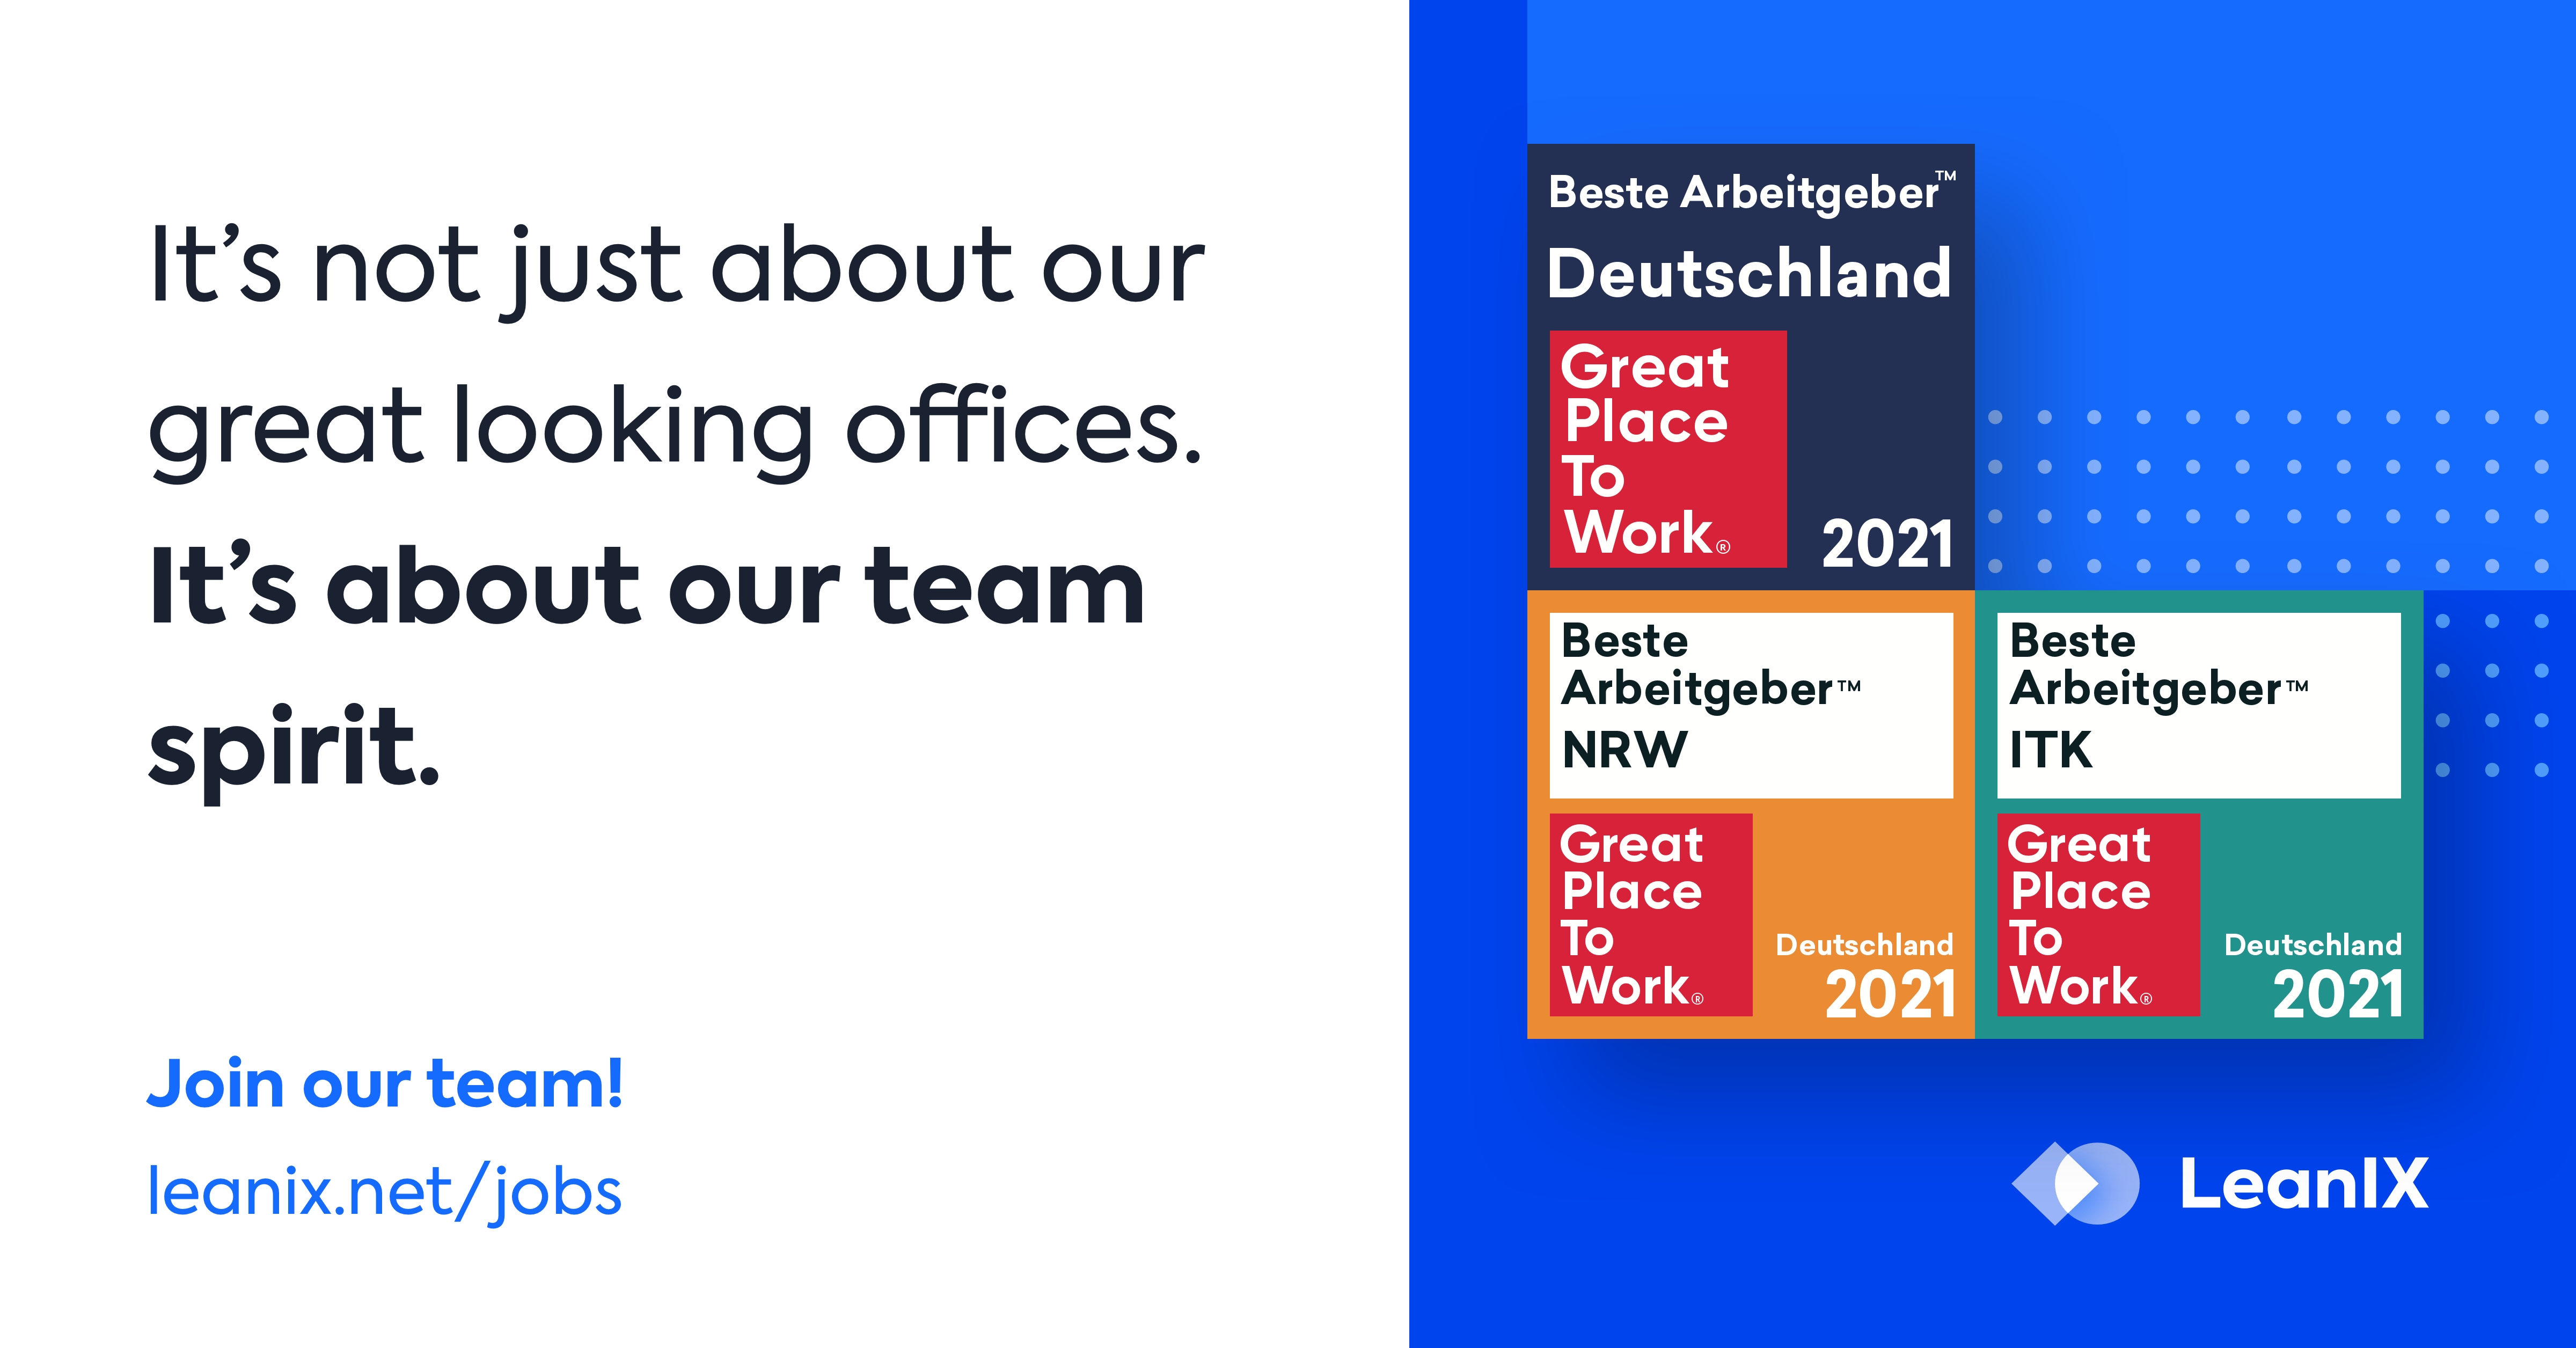 Want the Best Place to Work? Join the LeanIX Team!